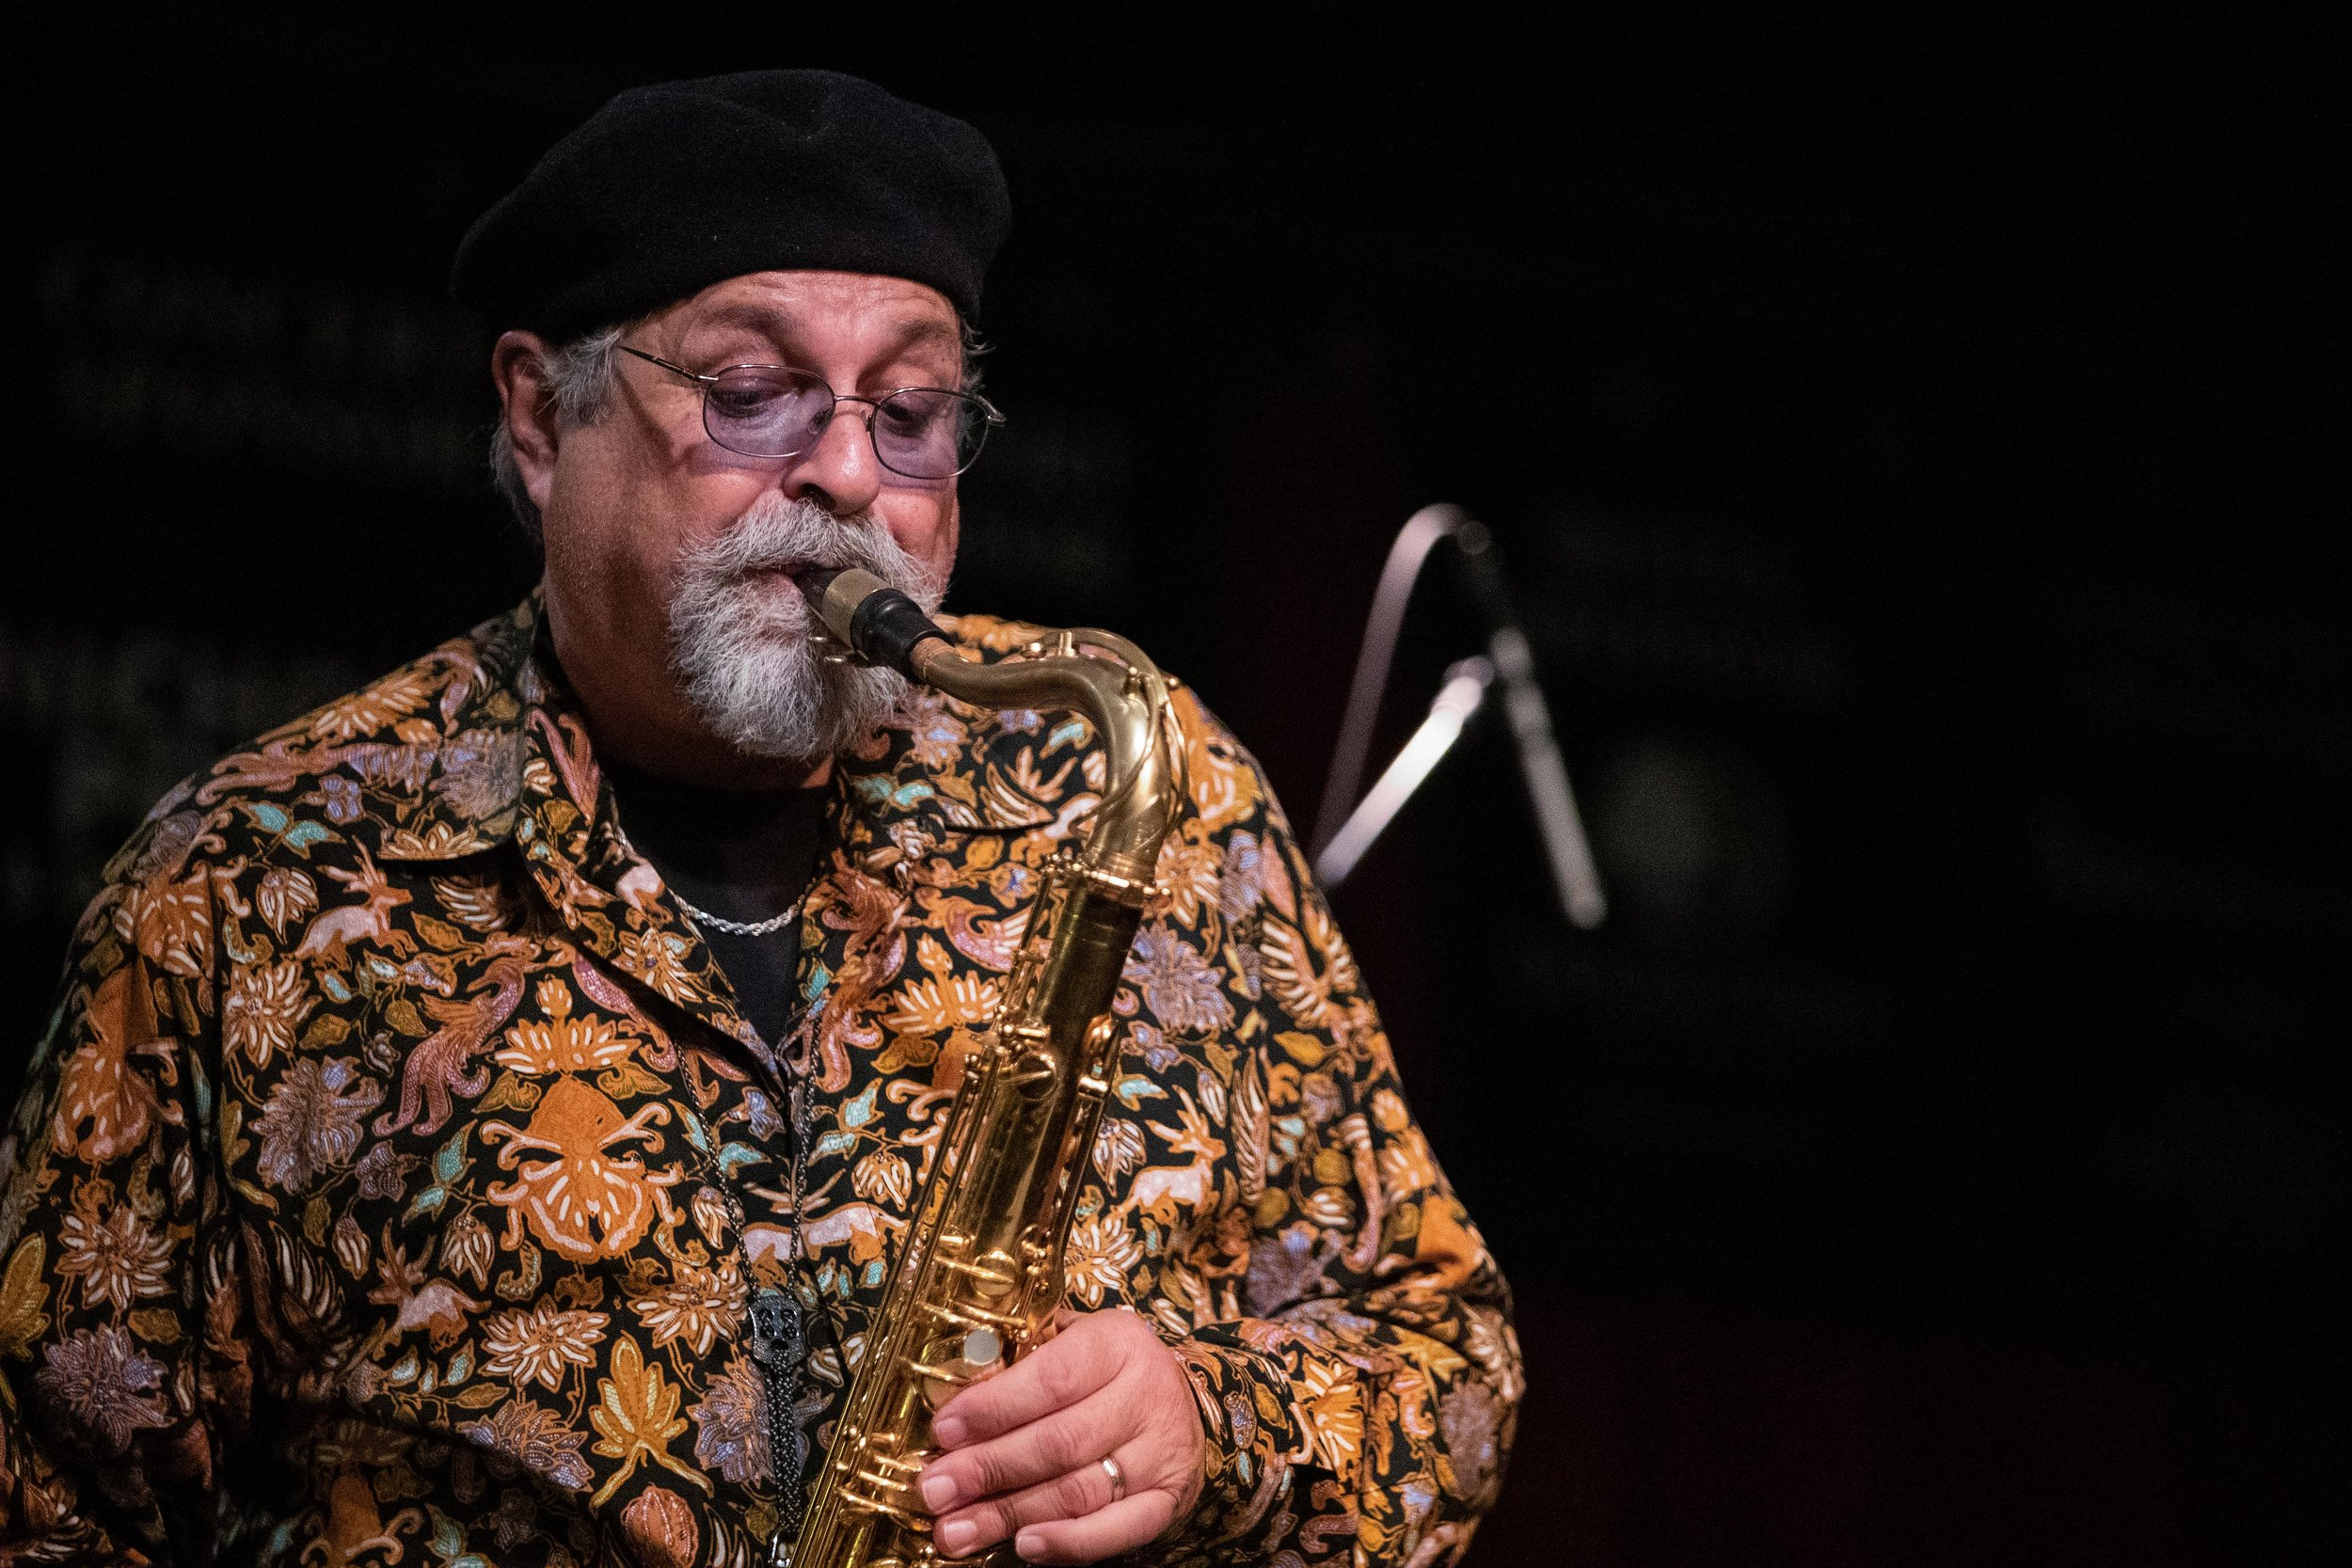 Joe Lovano performs Trio Tapestry at Outpost Performance Space with Marilyn Crispel and Carmen Castaldi.